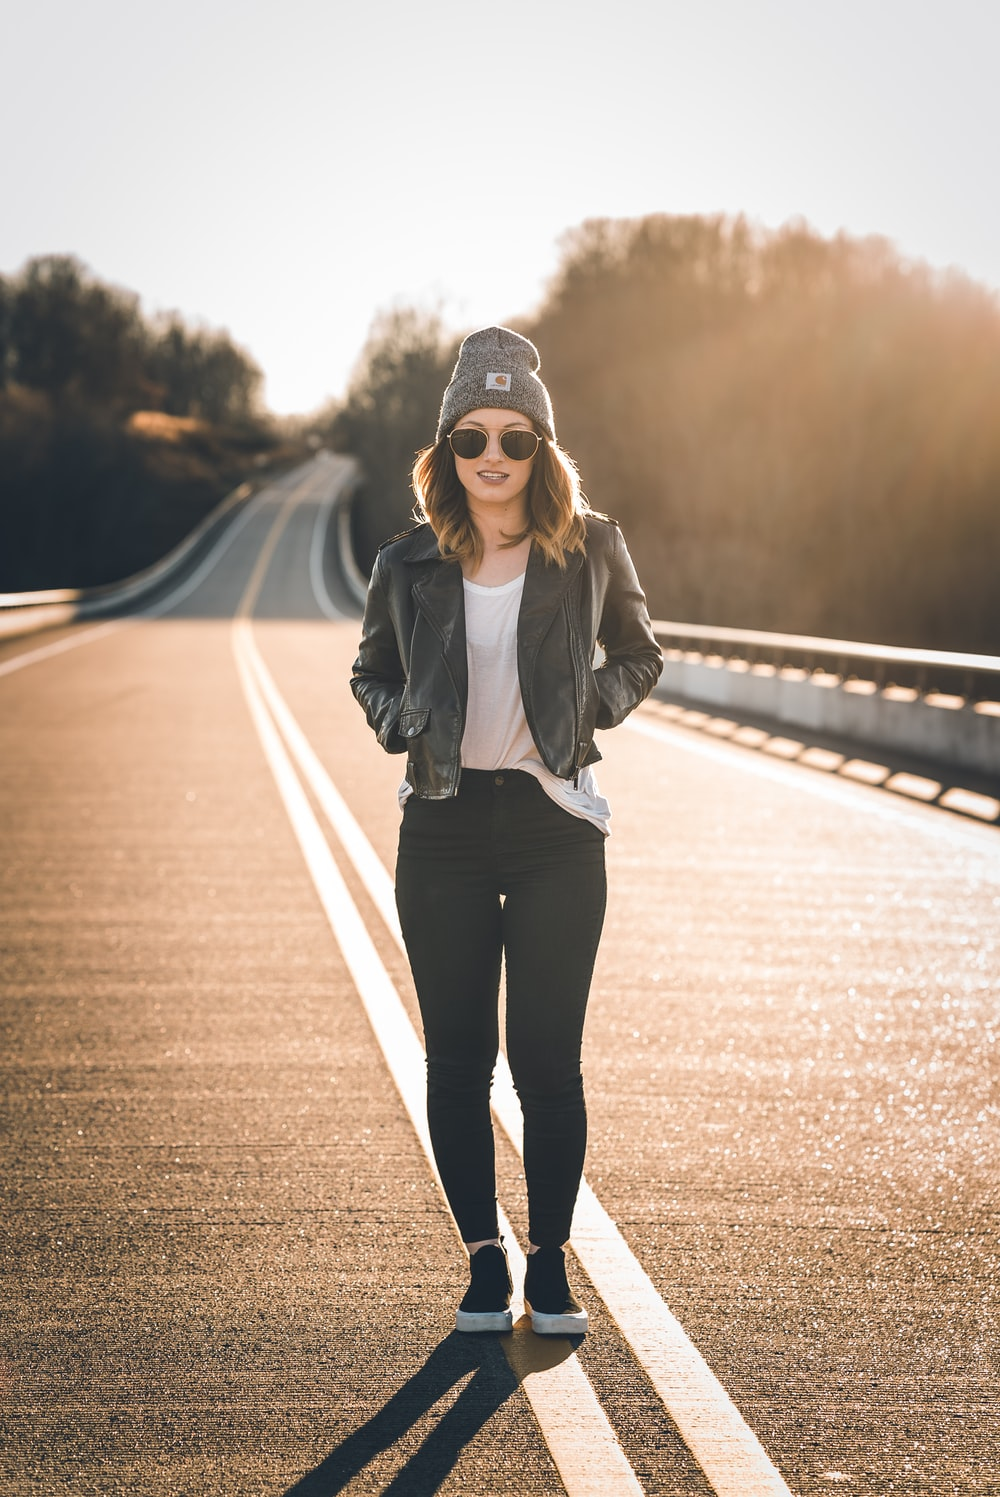 woman in black jacket and black pants standing on road during daytime